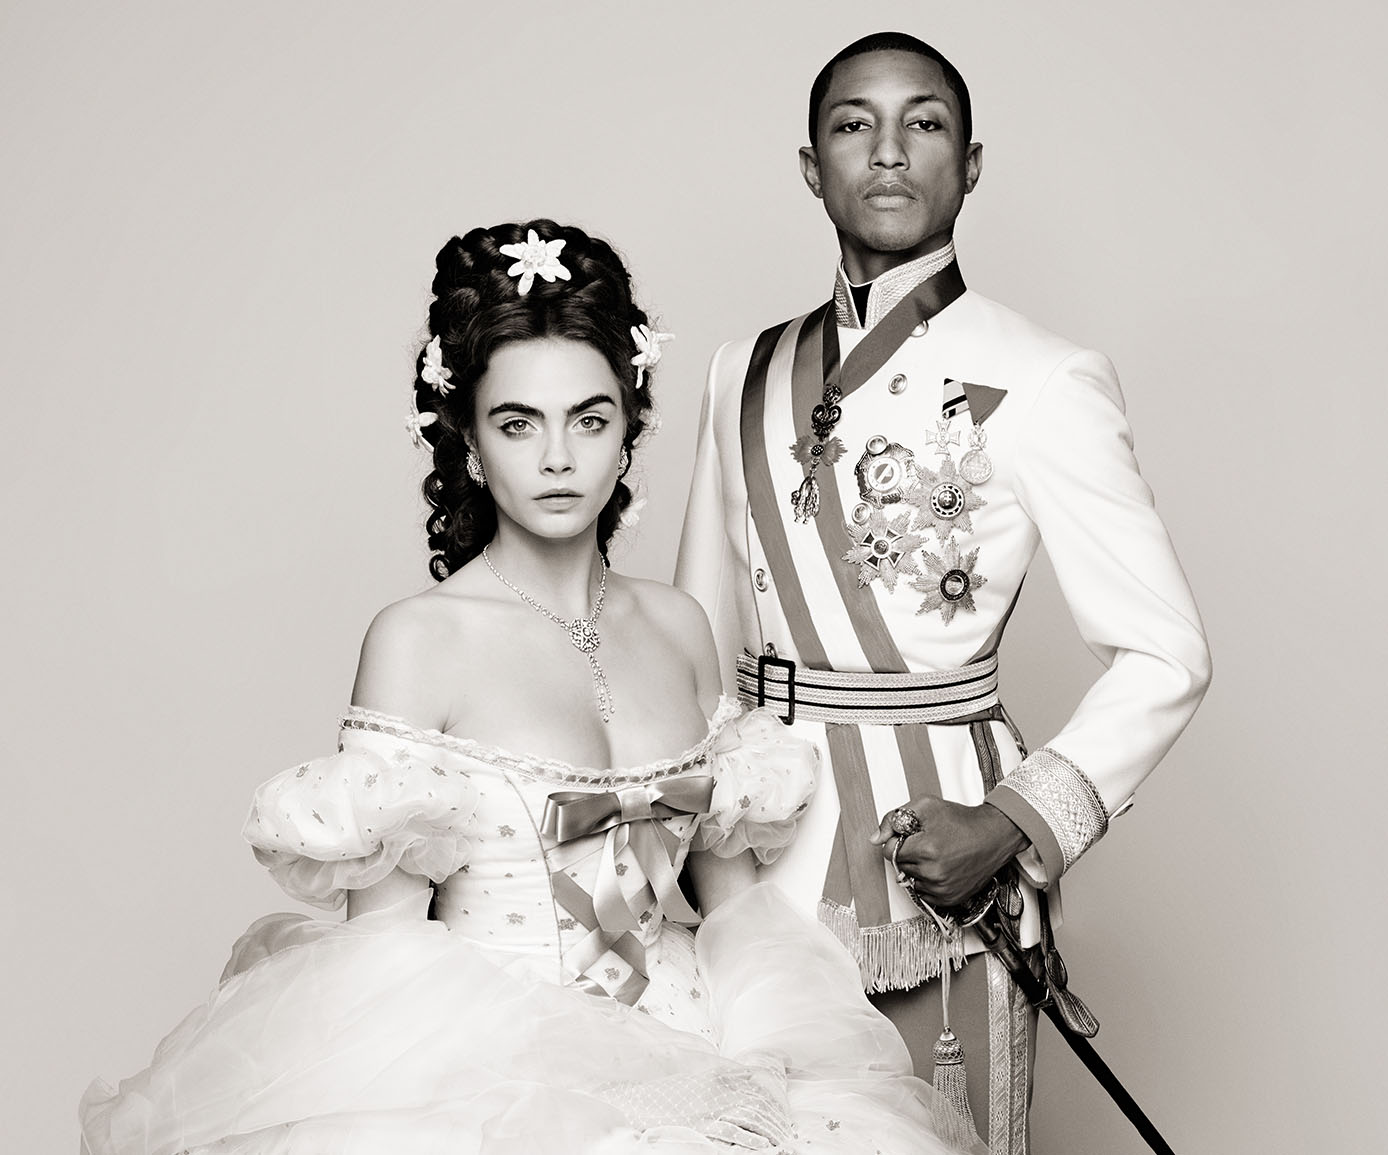 Pharrell Williams Cara Delevingne - Reincarnation by Karl Lagerfeld